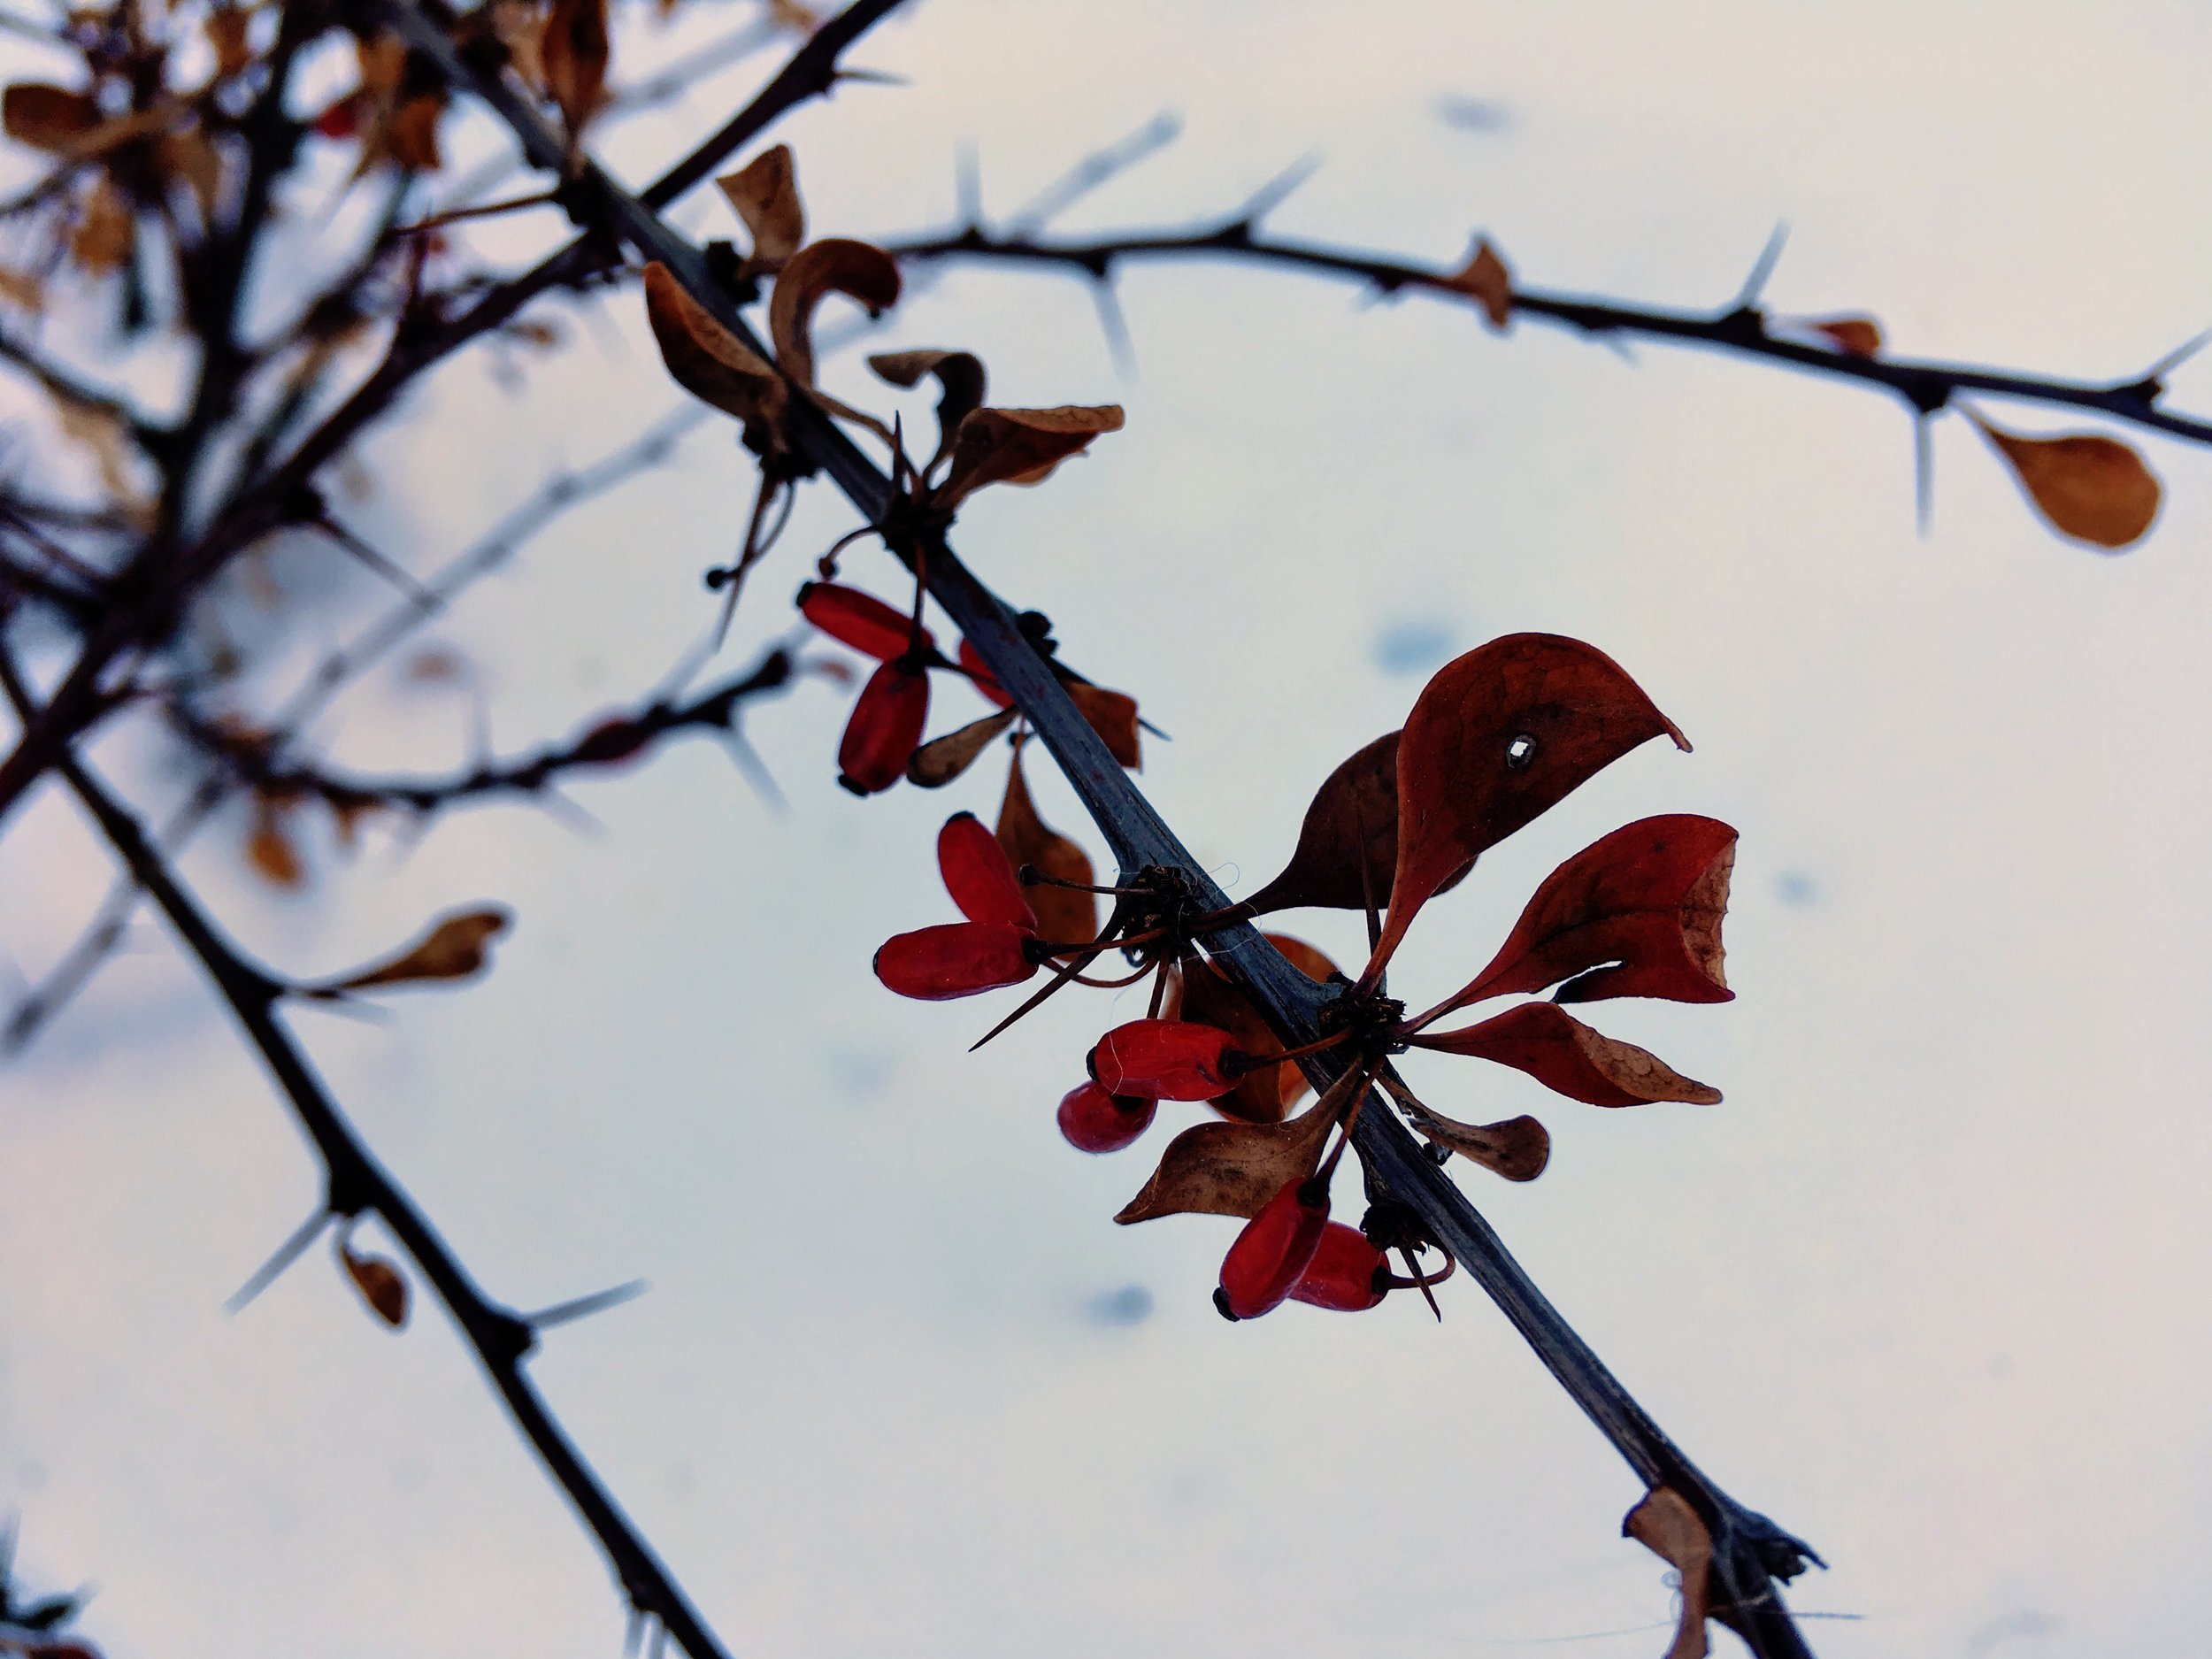 The fruits and leaves of Japanese barberry ( Berberis thunbergii ) often remain on the plant through the winter. The alternate arrangement of single thorns is key to distinguishing it from common barberry ( Berberis vulgaris ), which has three-pronged thorns.